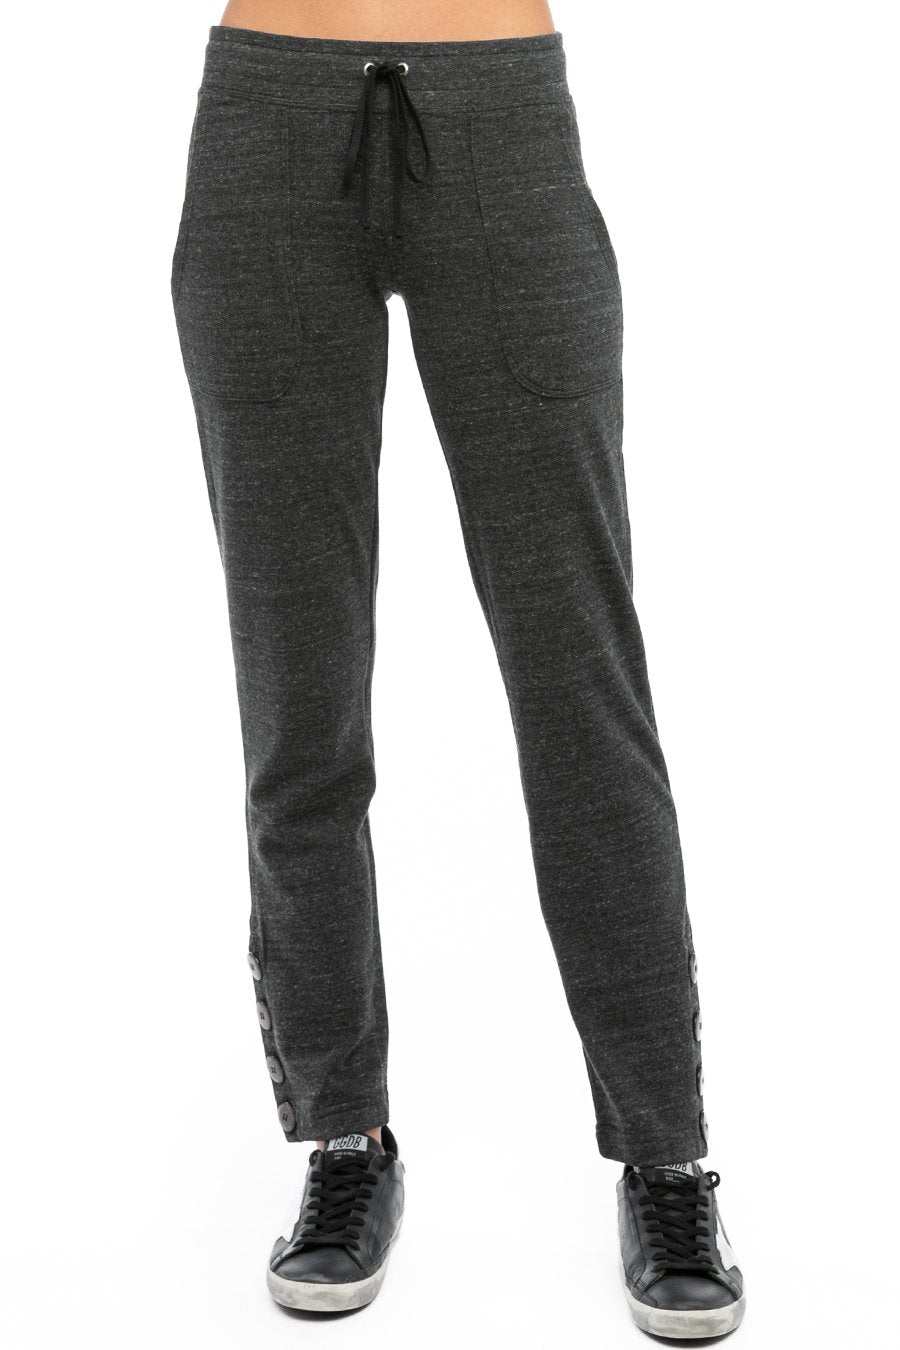 Hard Tail Forever Sueded Side Button Ankle Sweatpant - Black - XS